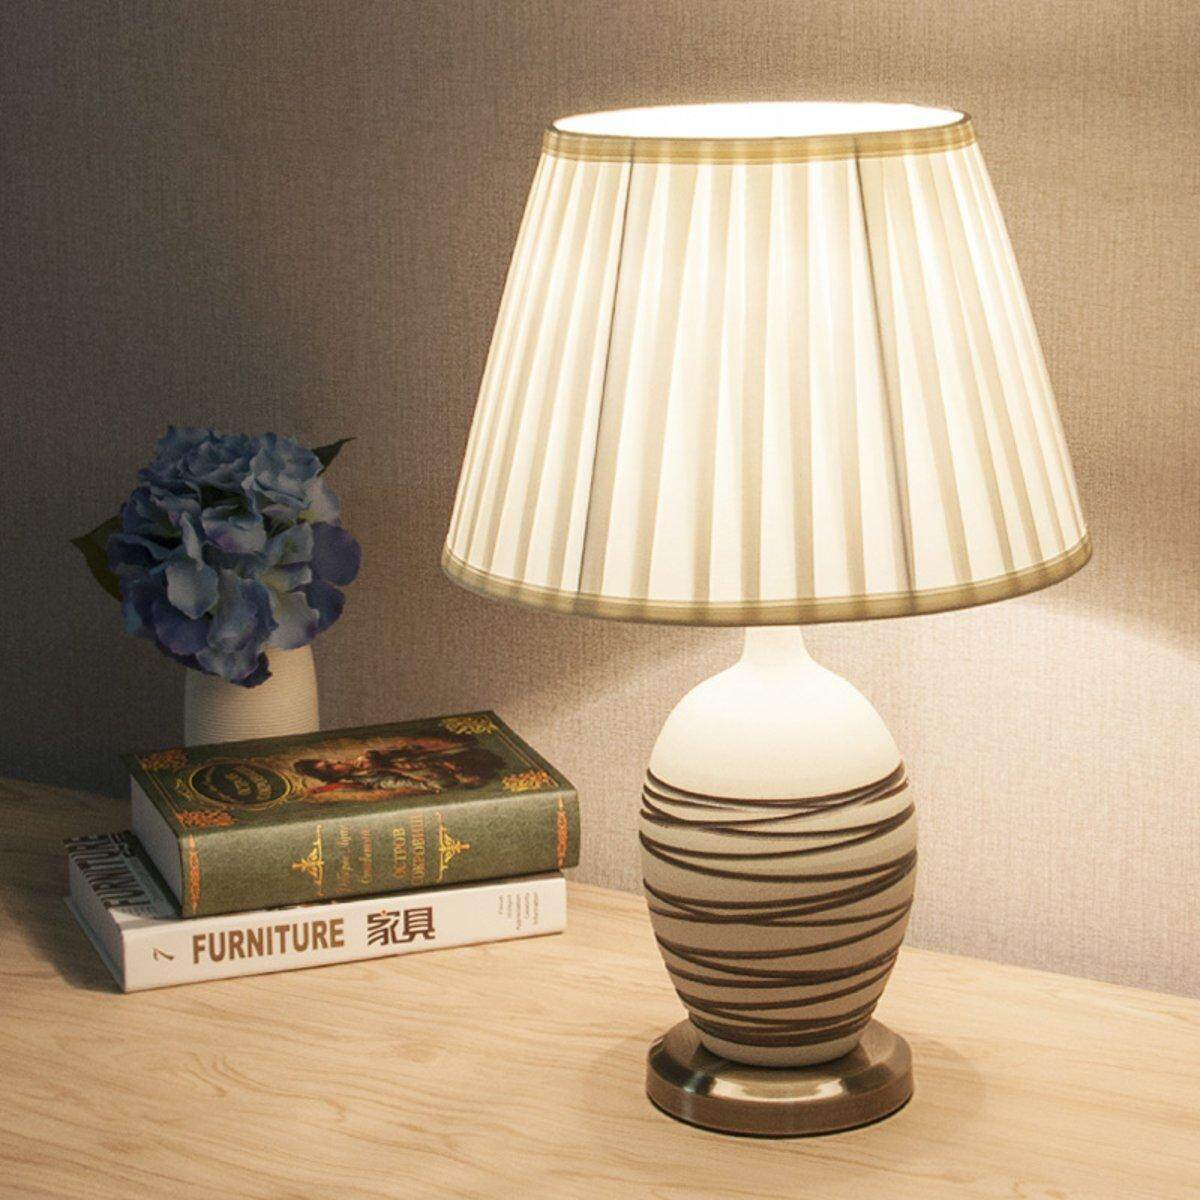 6 To 20 Fabric Box Pleat Lamp Shade Table Light Lampshade Mink Cream Ivory 350mm By Glimmer.